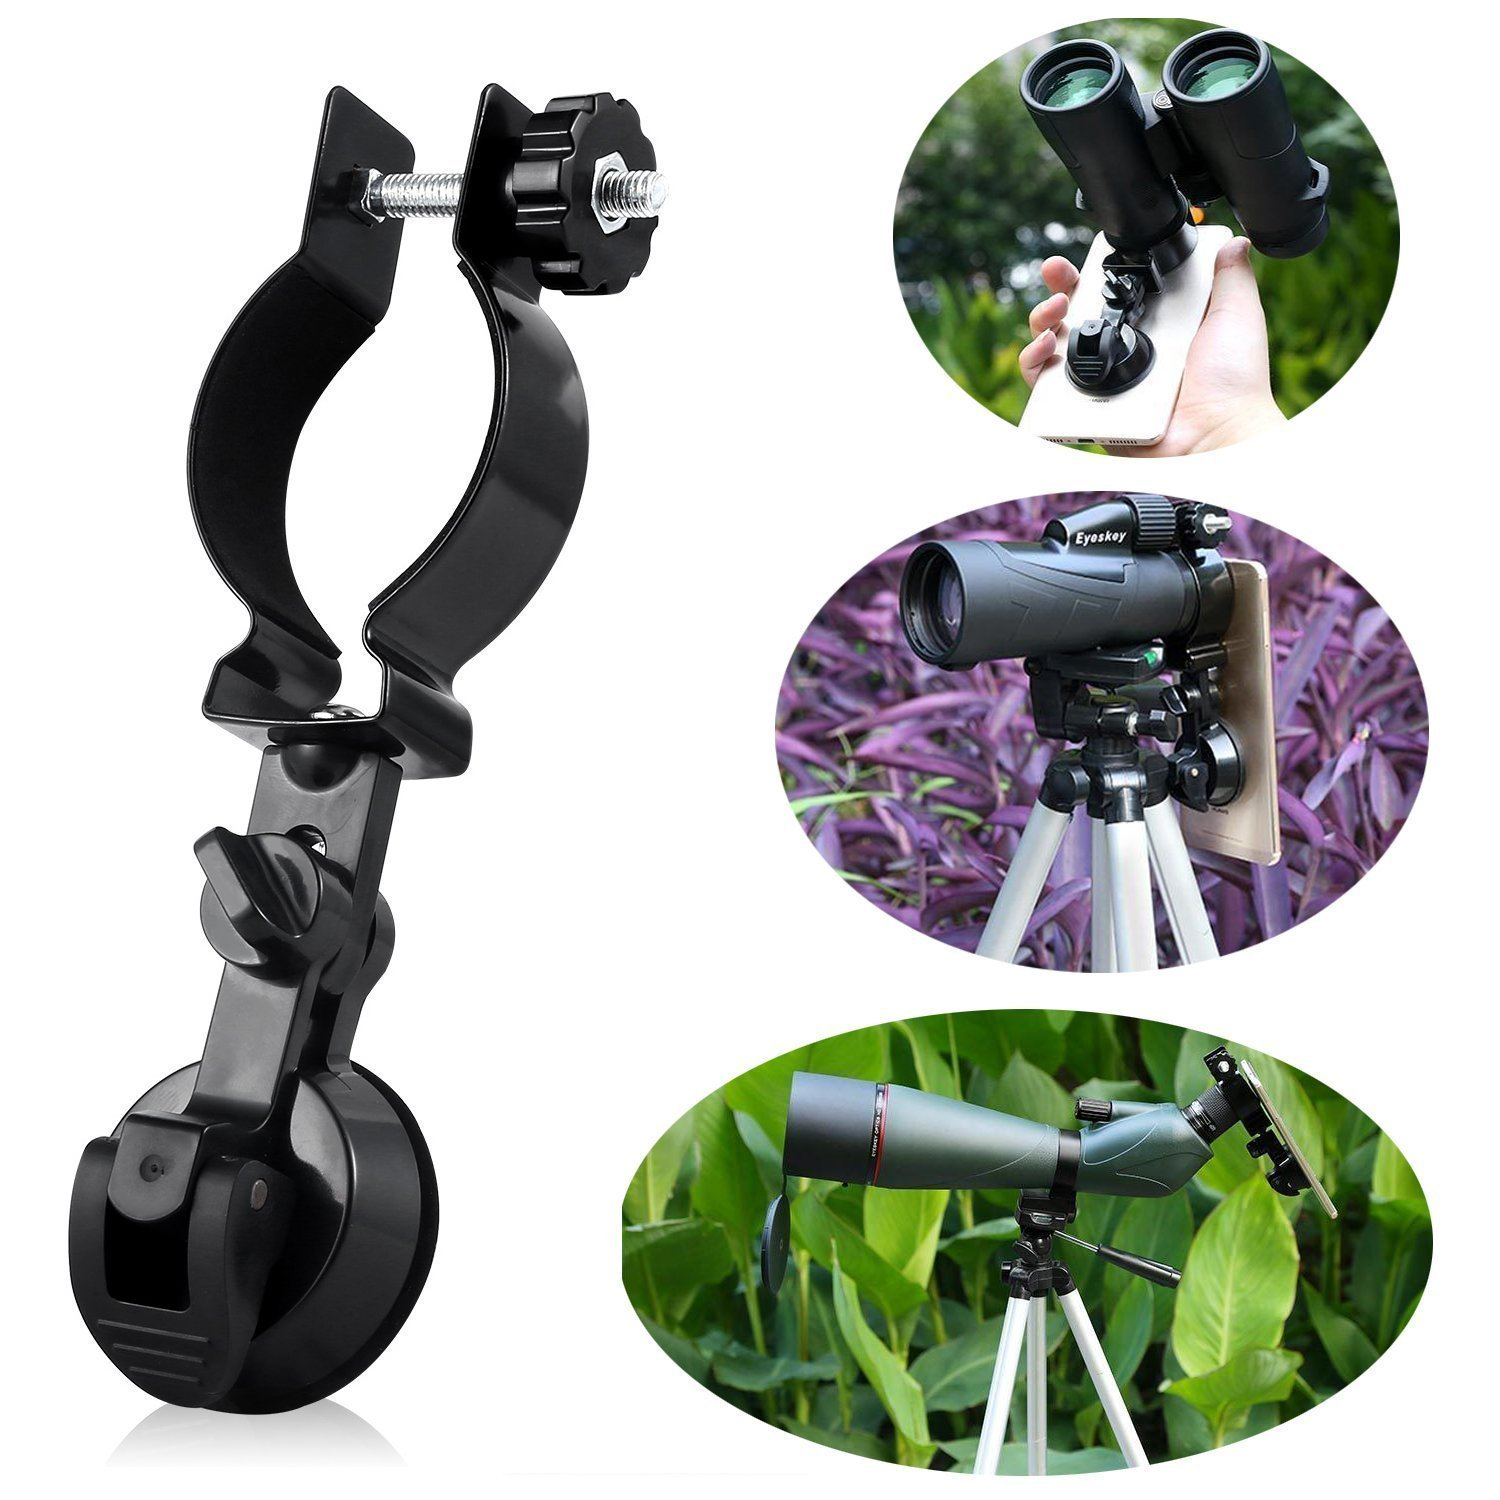 Eyeskey Universal Portable Cellphone Adapter, Compatible with Binoculars, Monocular Spotting Scope, Microscope and Astronomical Telescope